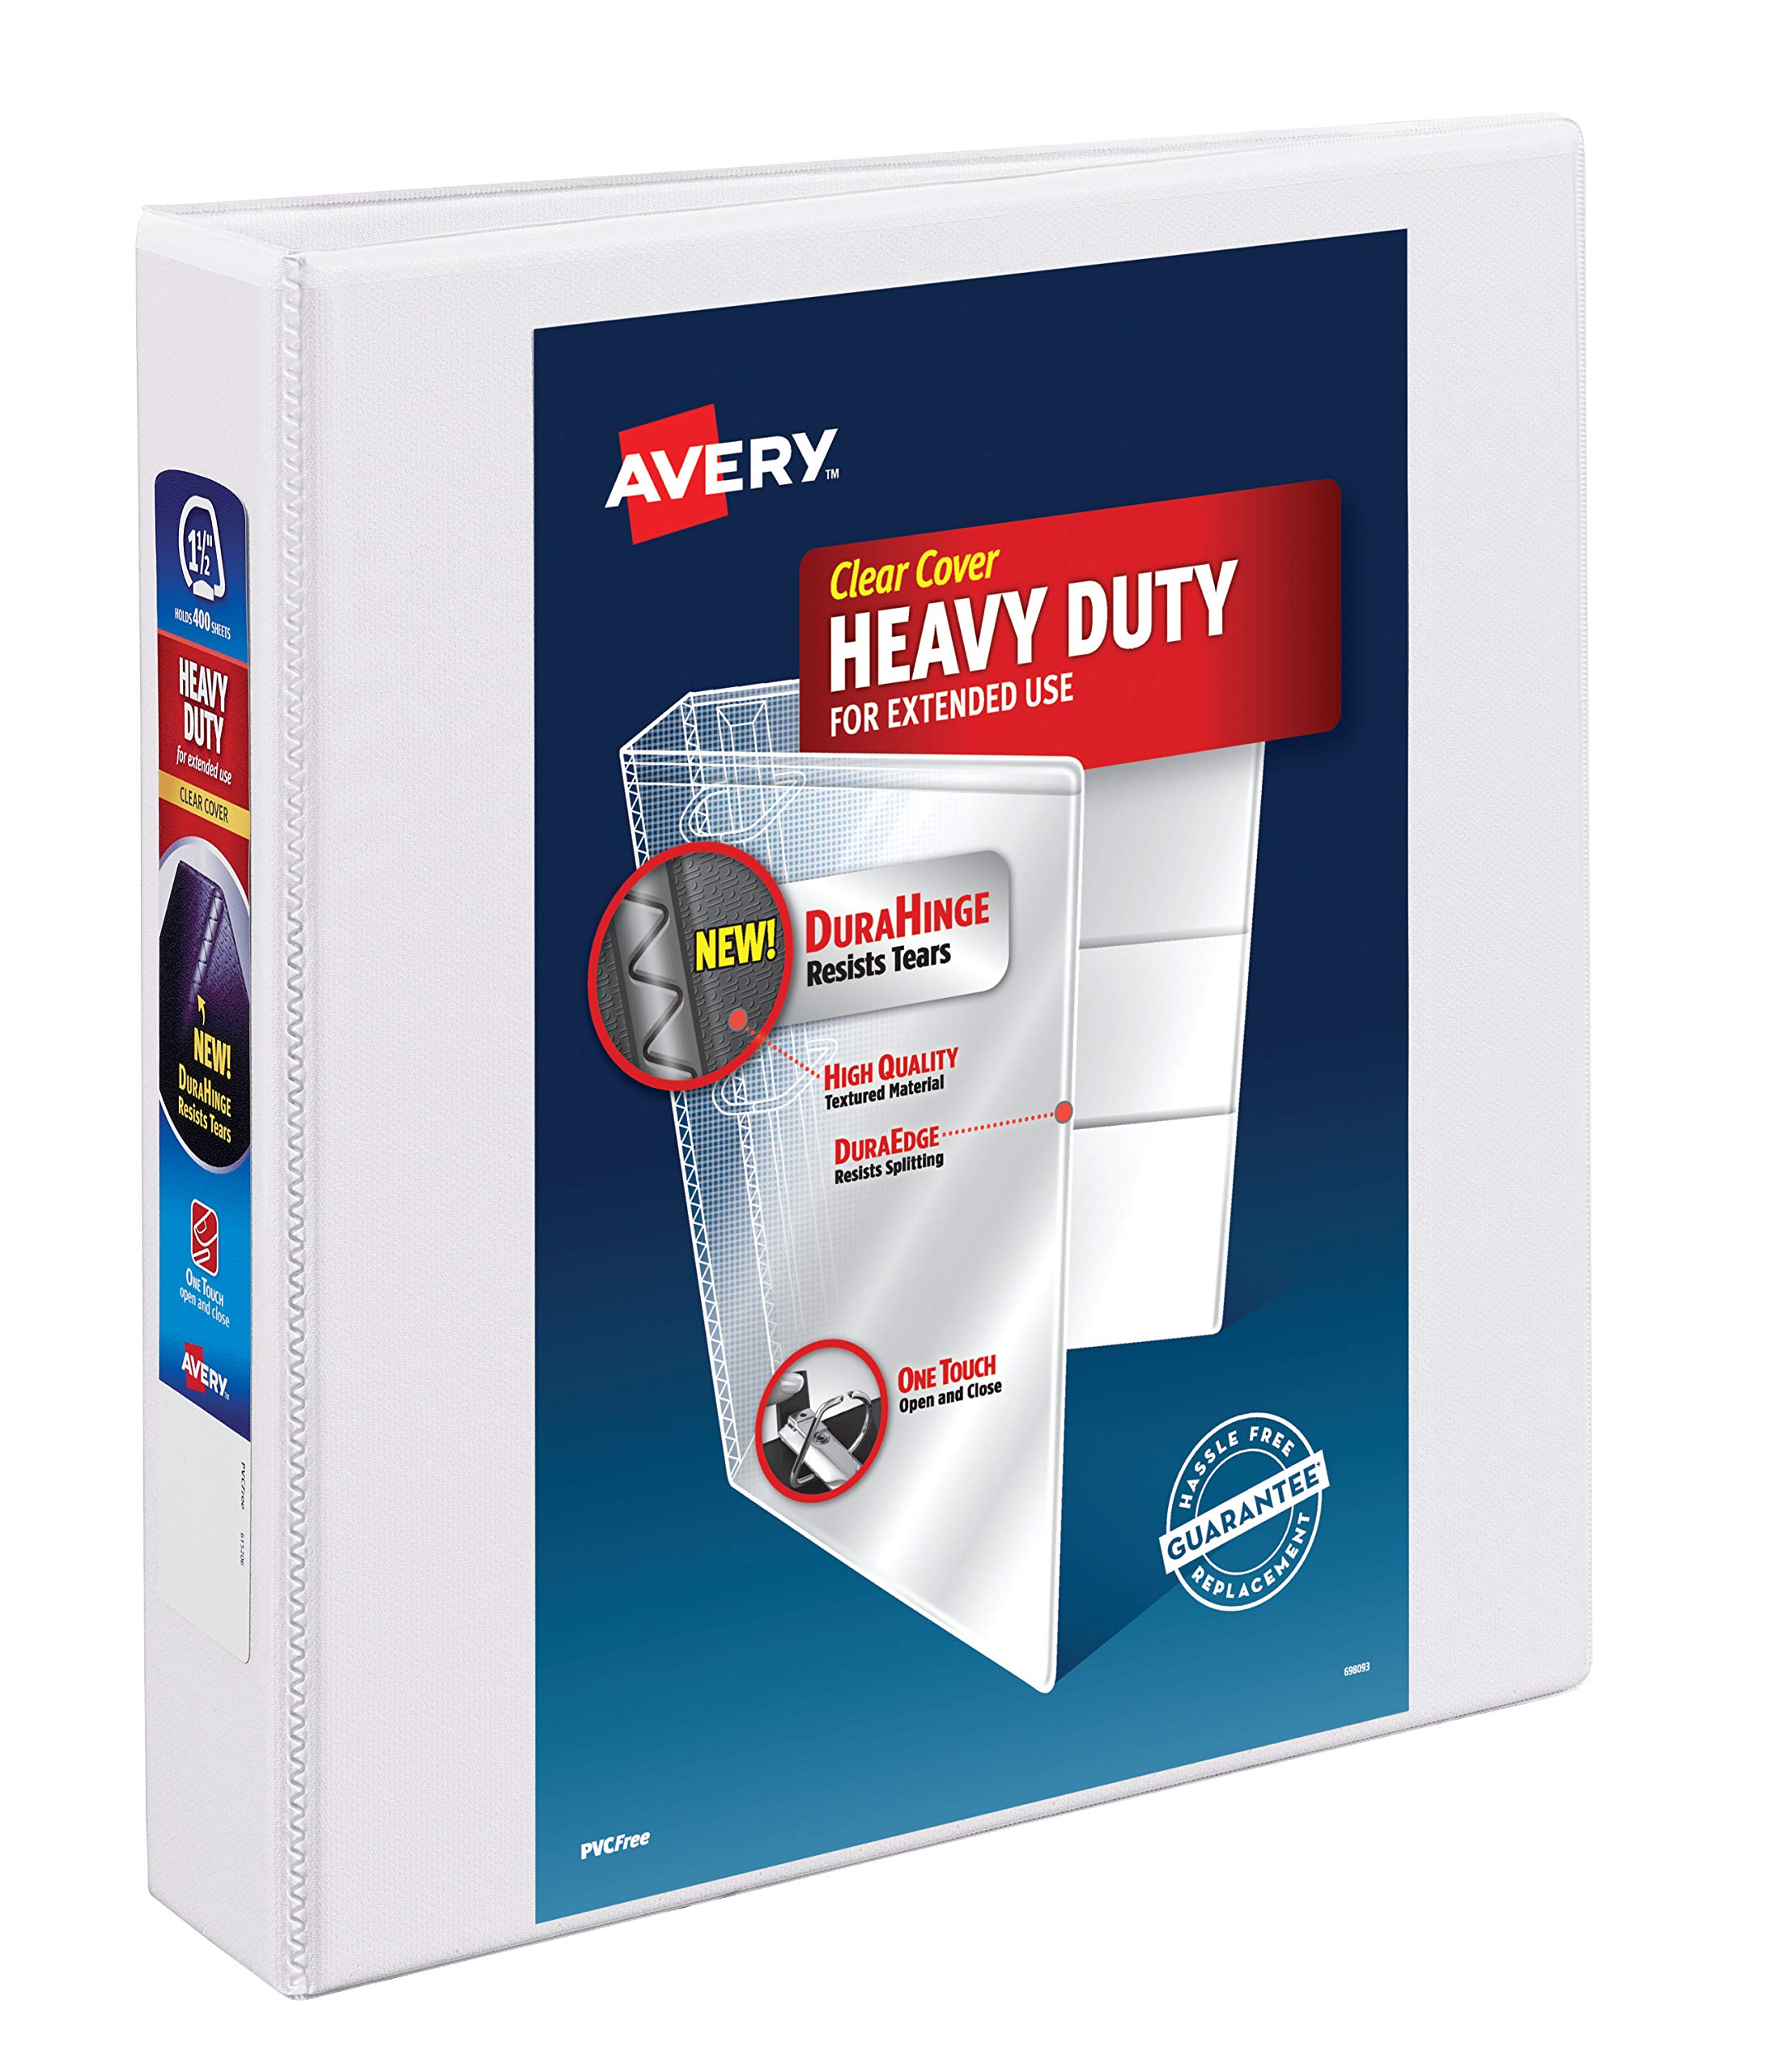 Avery Heavy-Duty View Binder, 1-1/2'' One Touch Slant Rings, DuraHinge, 12 White Binders (79795) by AVERY